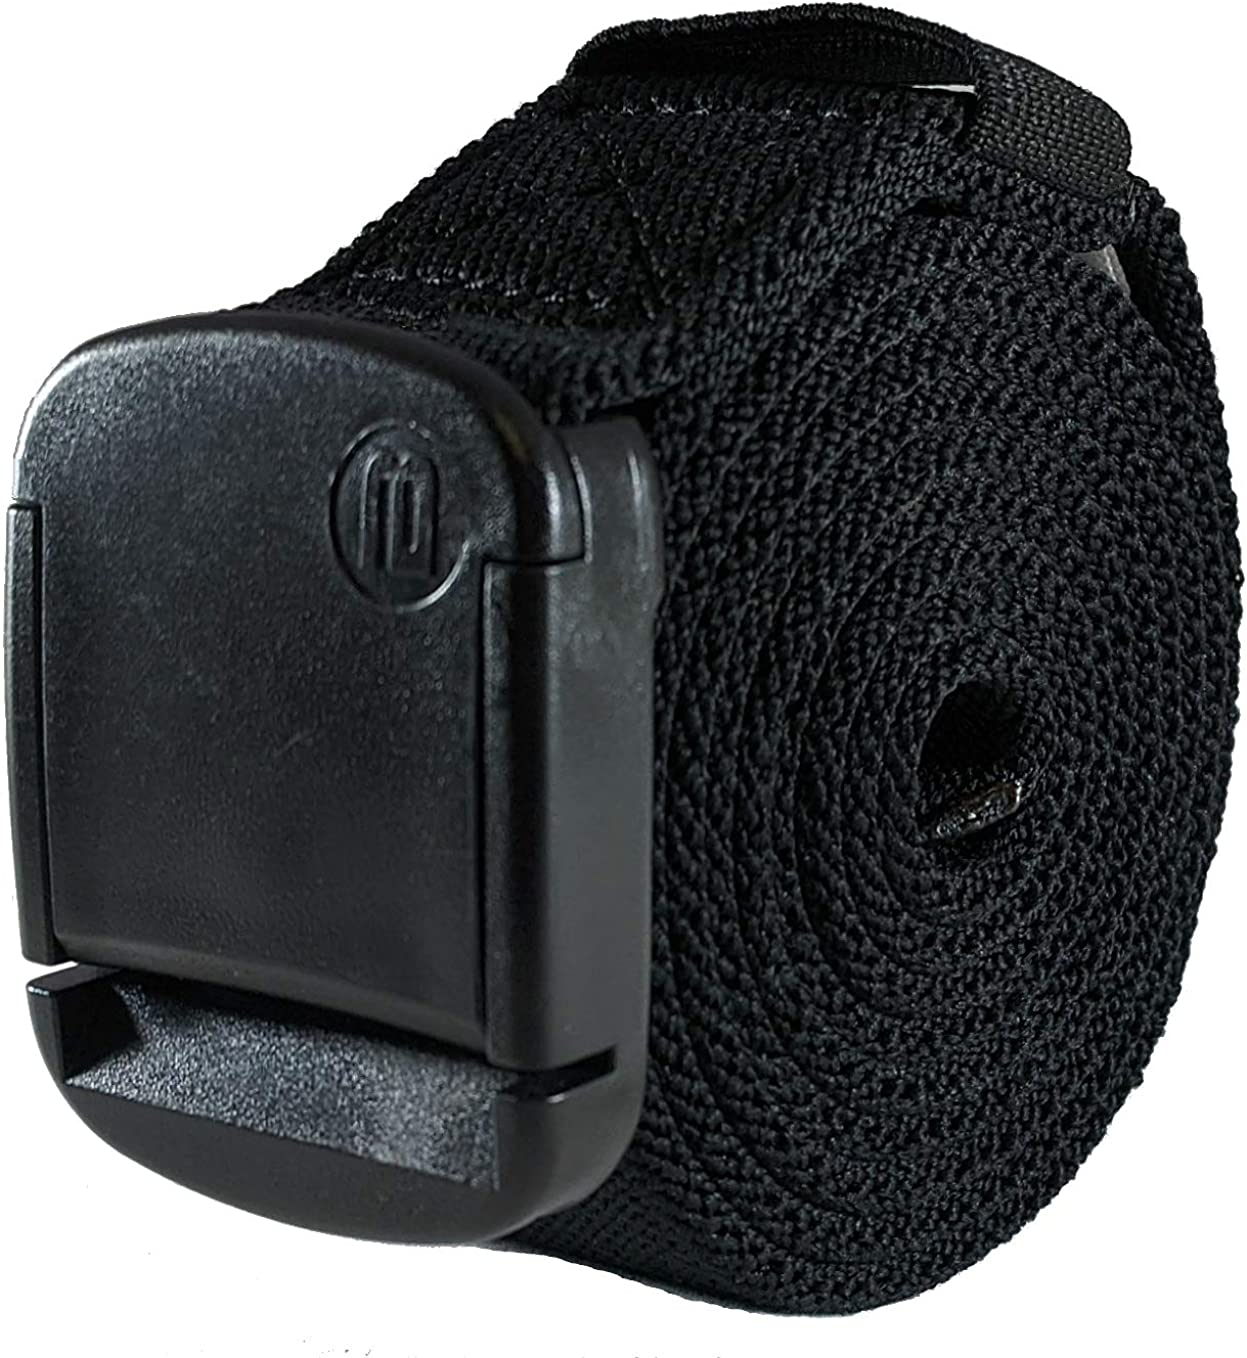 1.25 Inch Elastic Stretch Belt Unisex with Super Houston Mall popular specialty store Adjustable Buckle